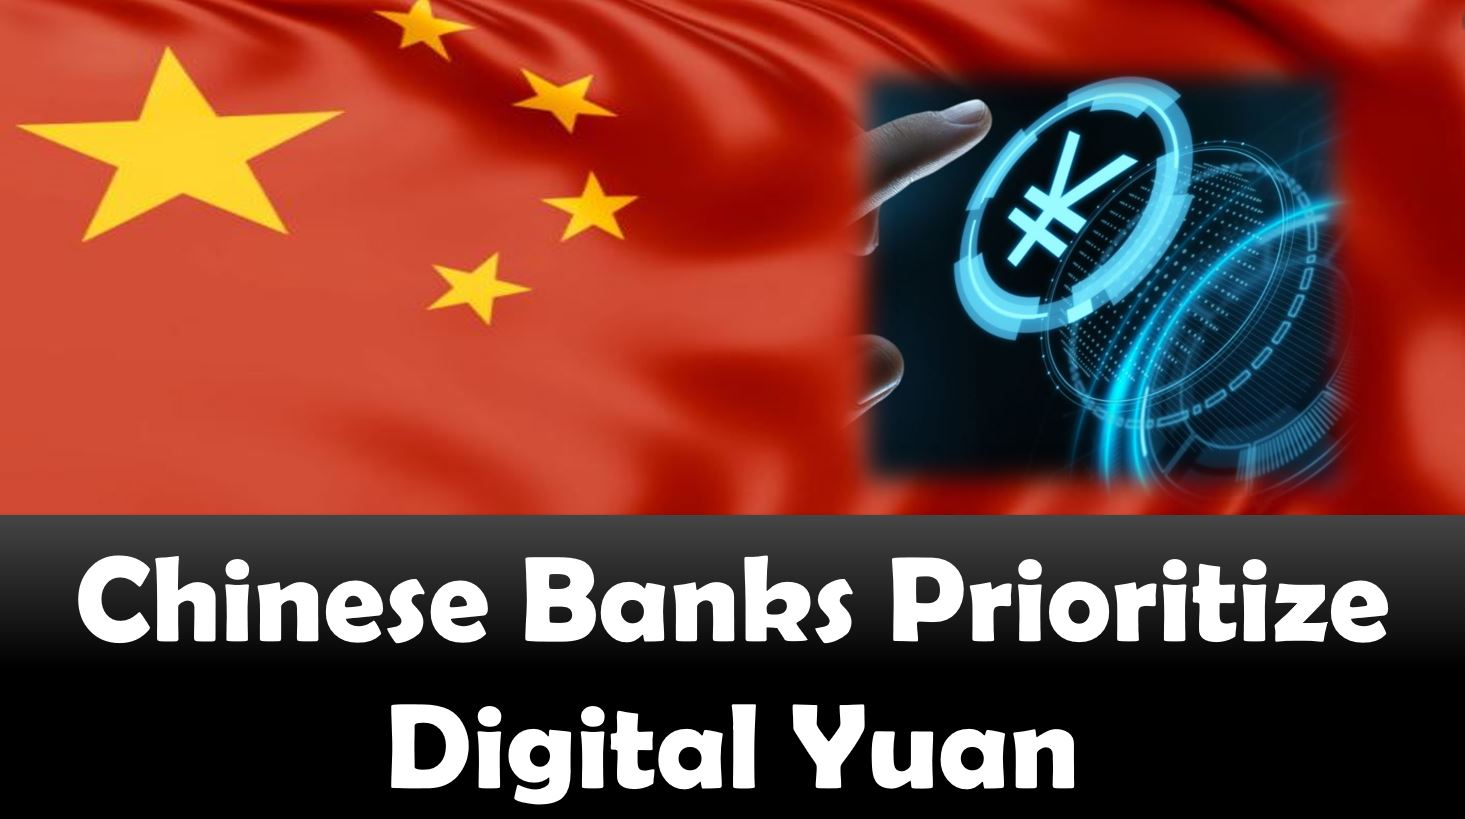 Chinese Banks Prioritize Digital Yuan